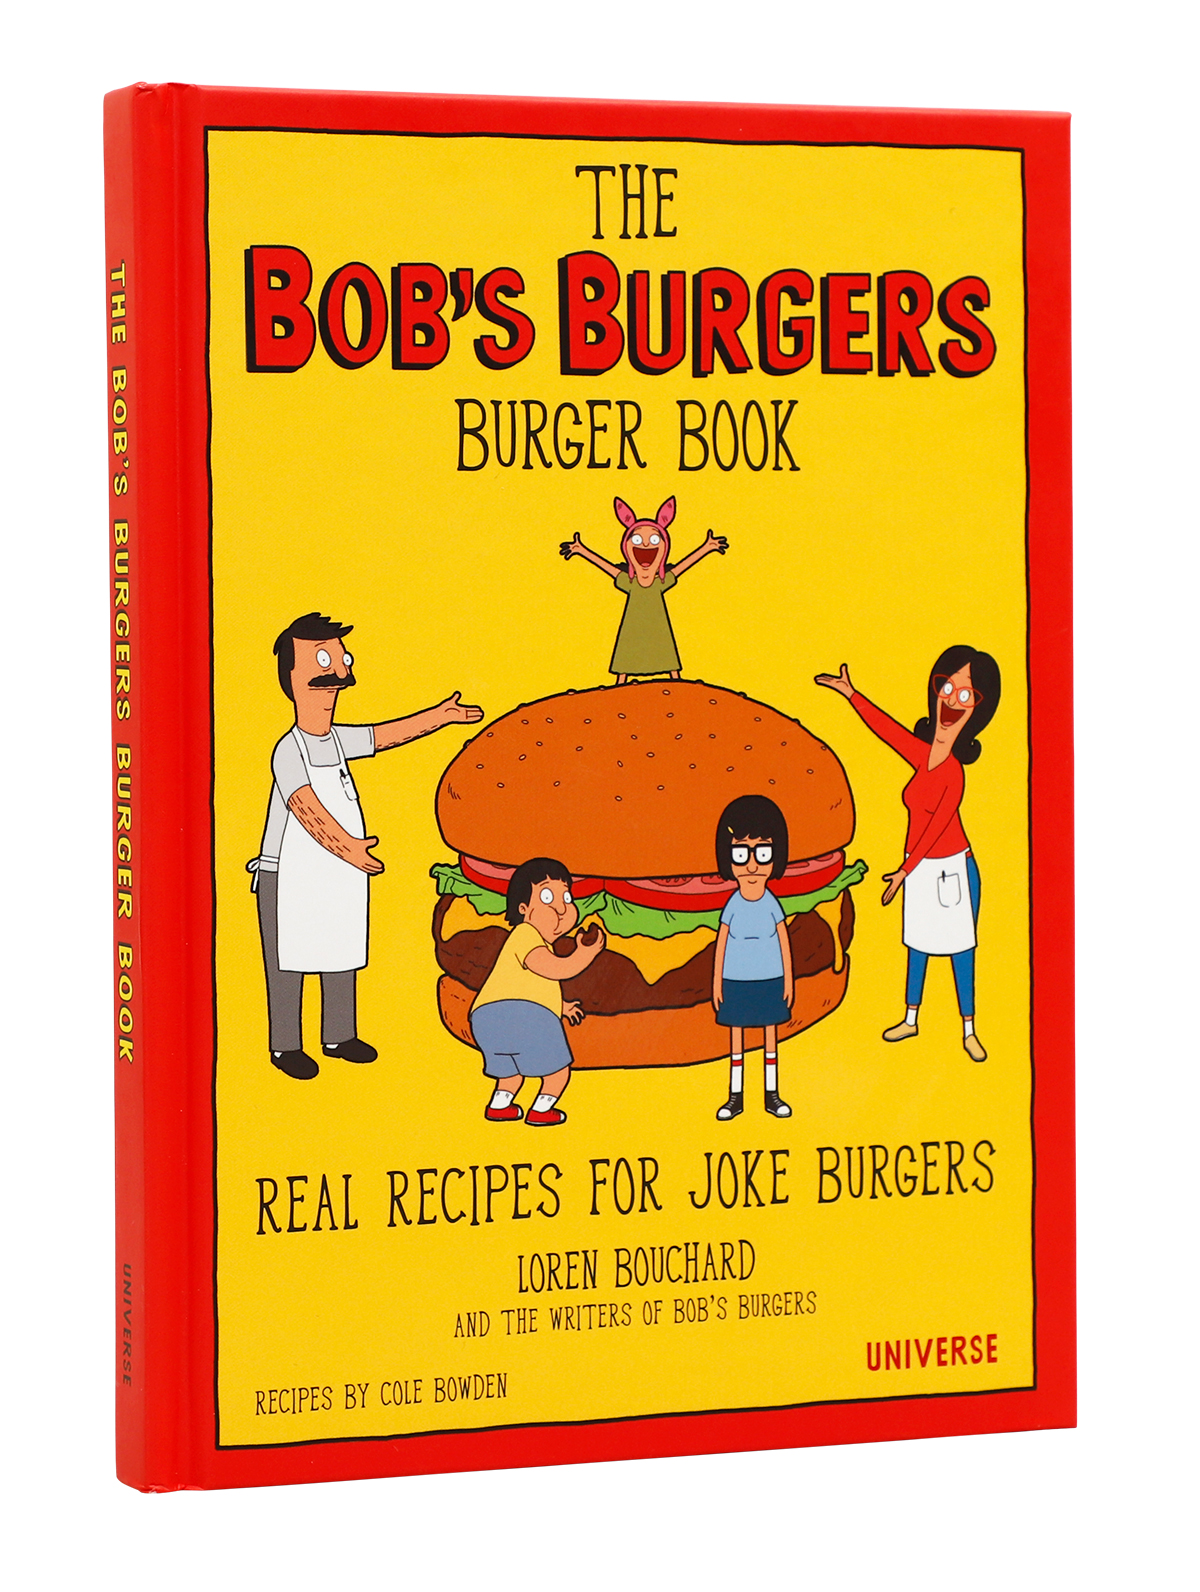 The Bobs Burgers Burger Book by Loren Bouchard and the writers of Bob's Burgers